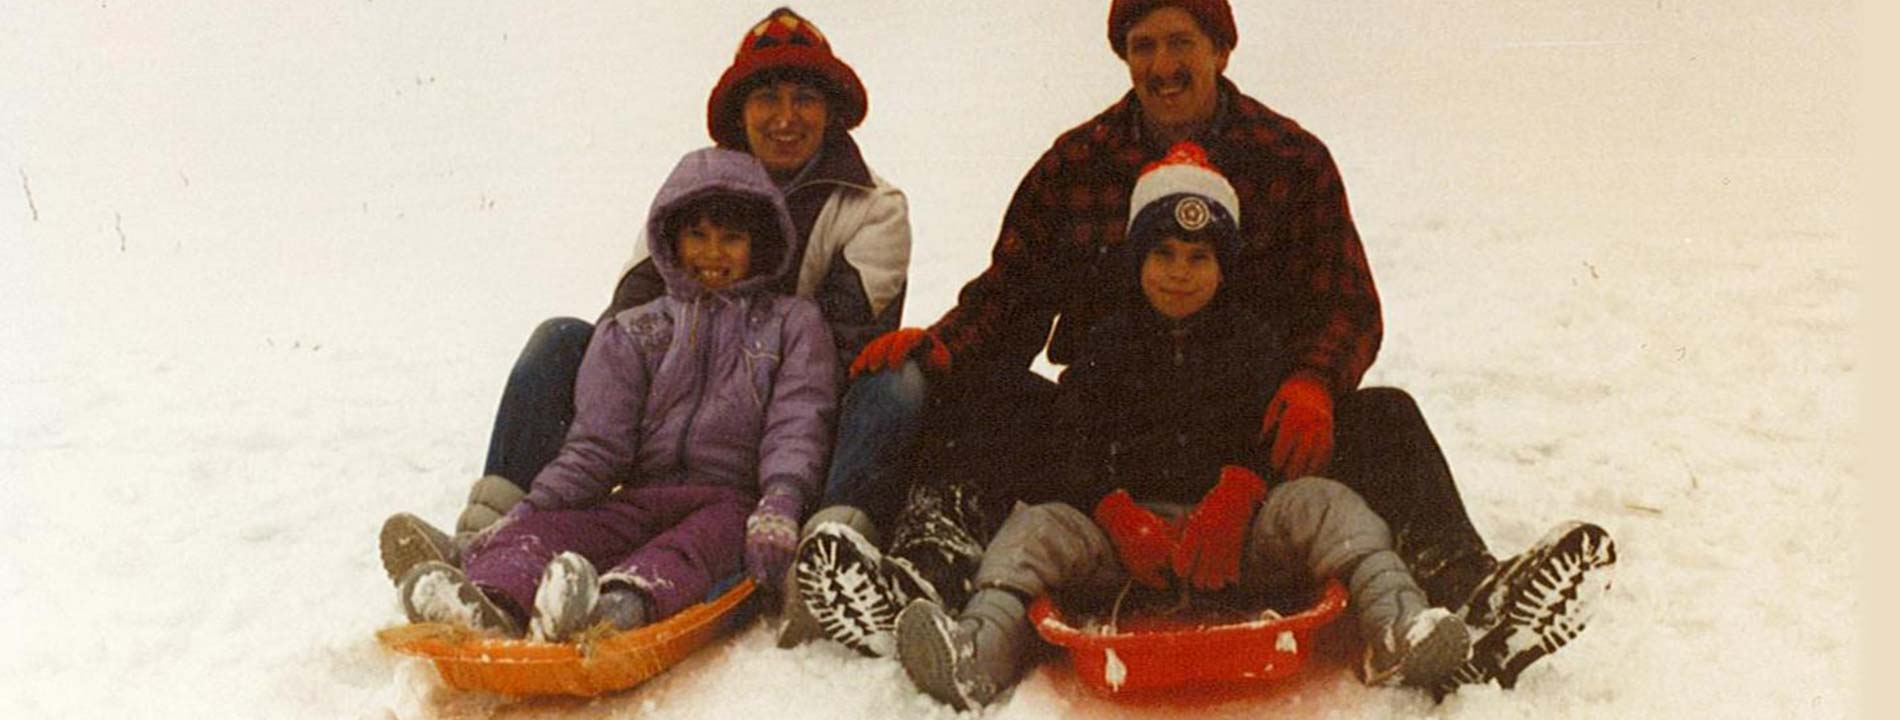 Young Ryan Smoker with his family on sleds